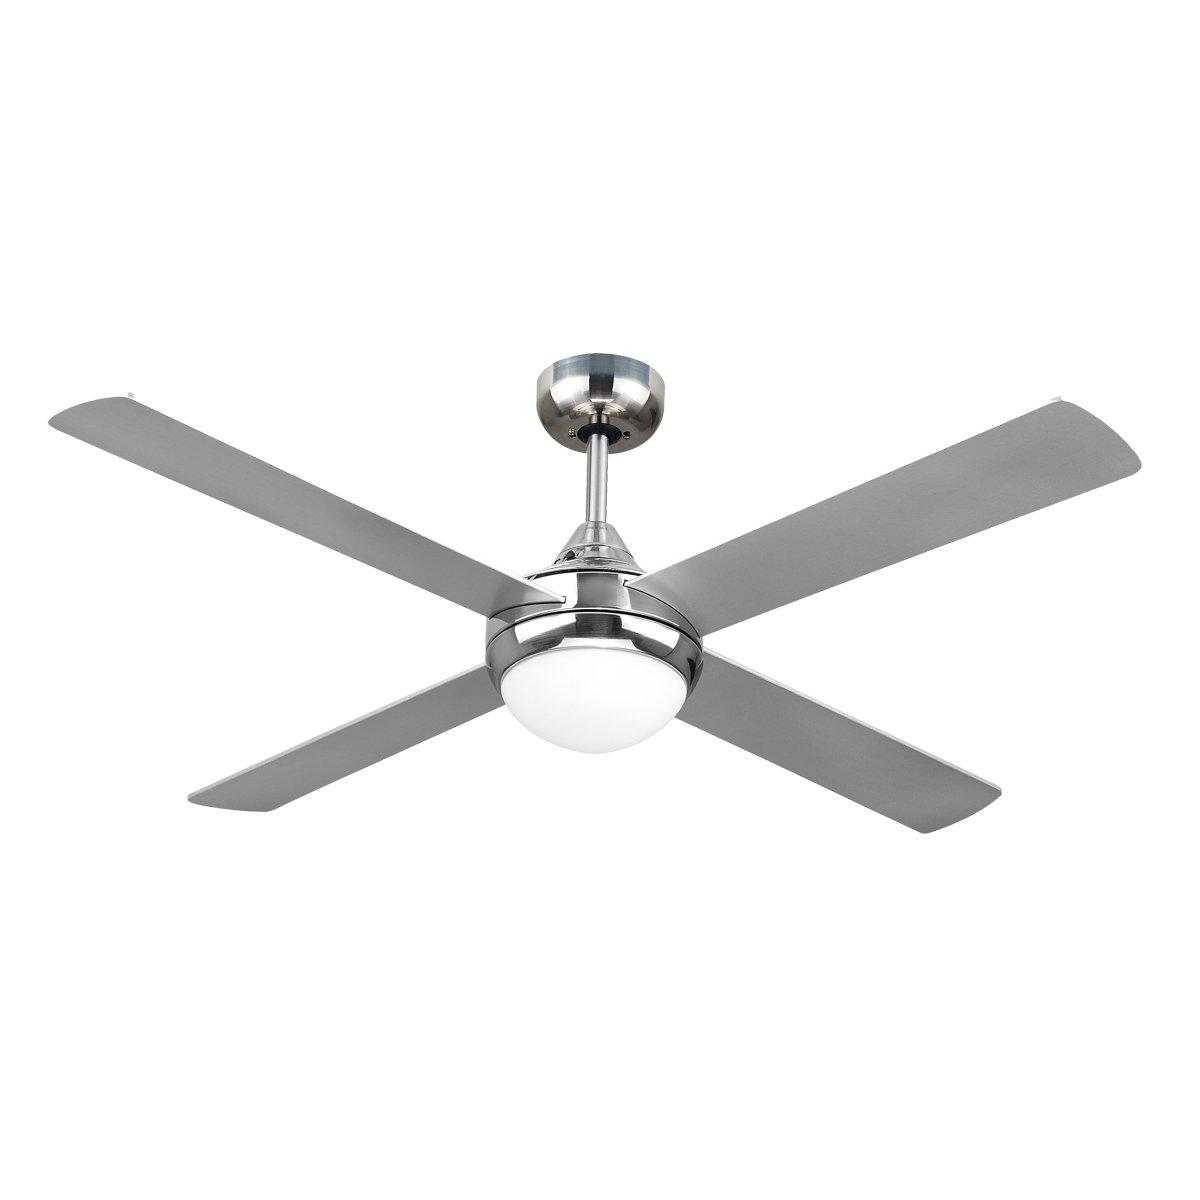 Revolve 48 Inch Ceiling Fan Brushed Chrome With Light